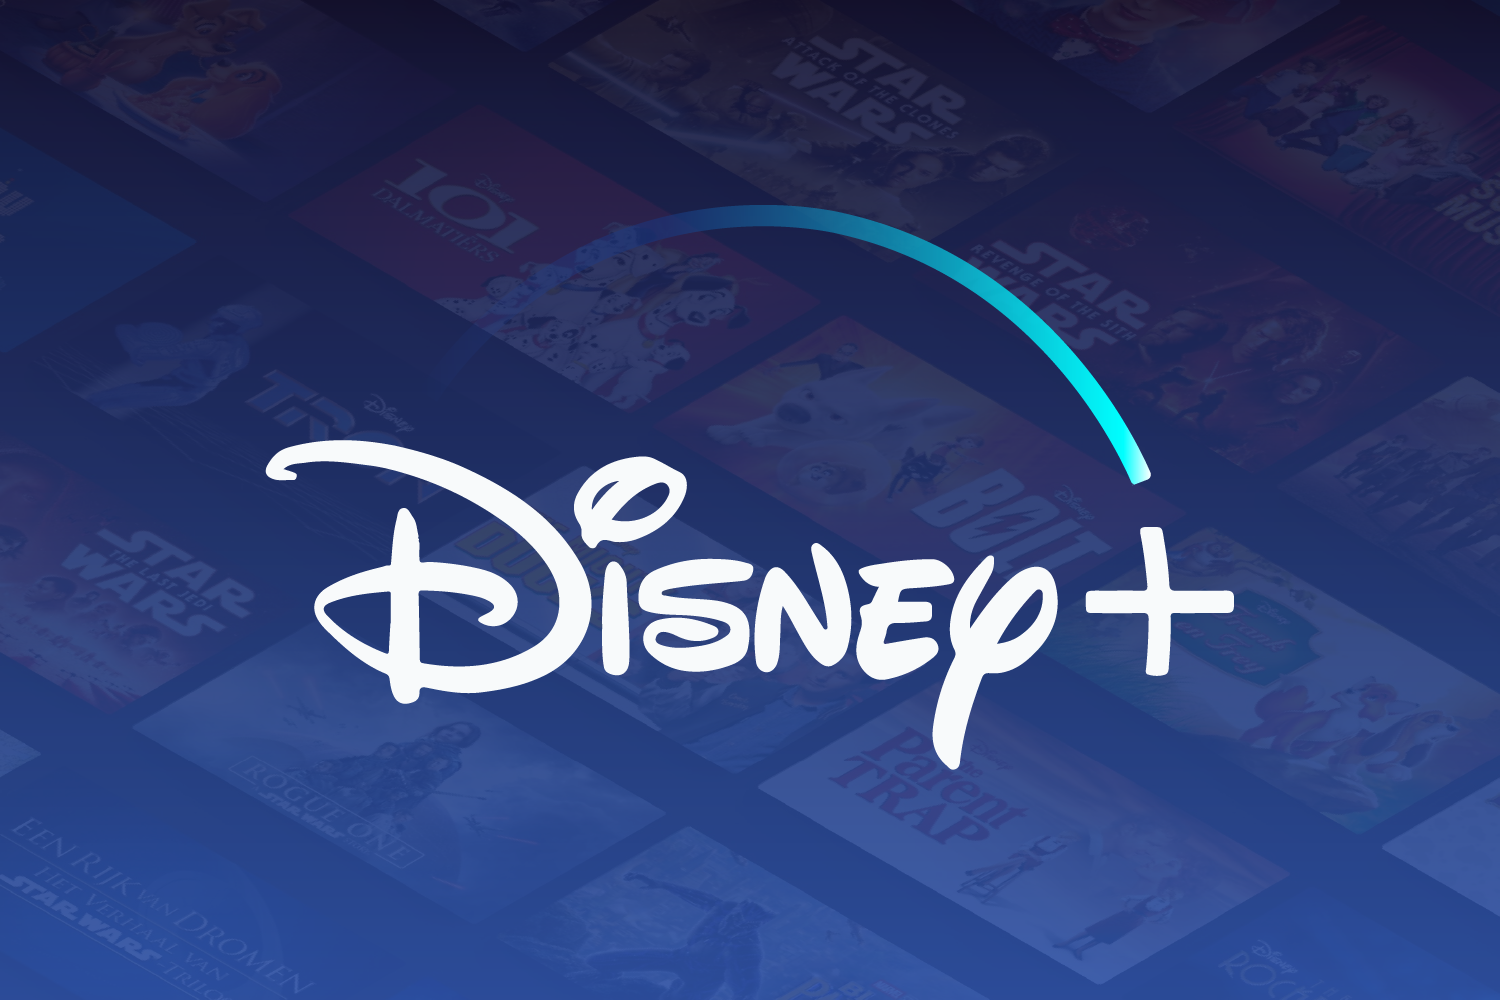 Disney+ features many titles to choose from.